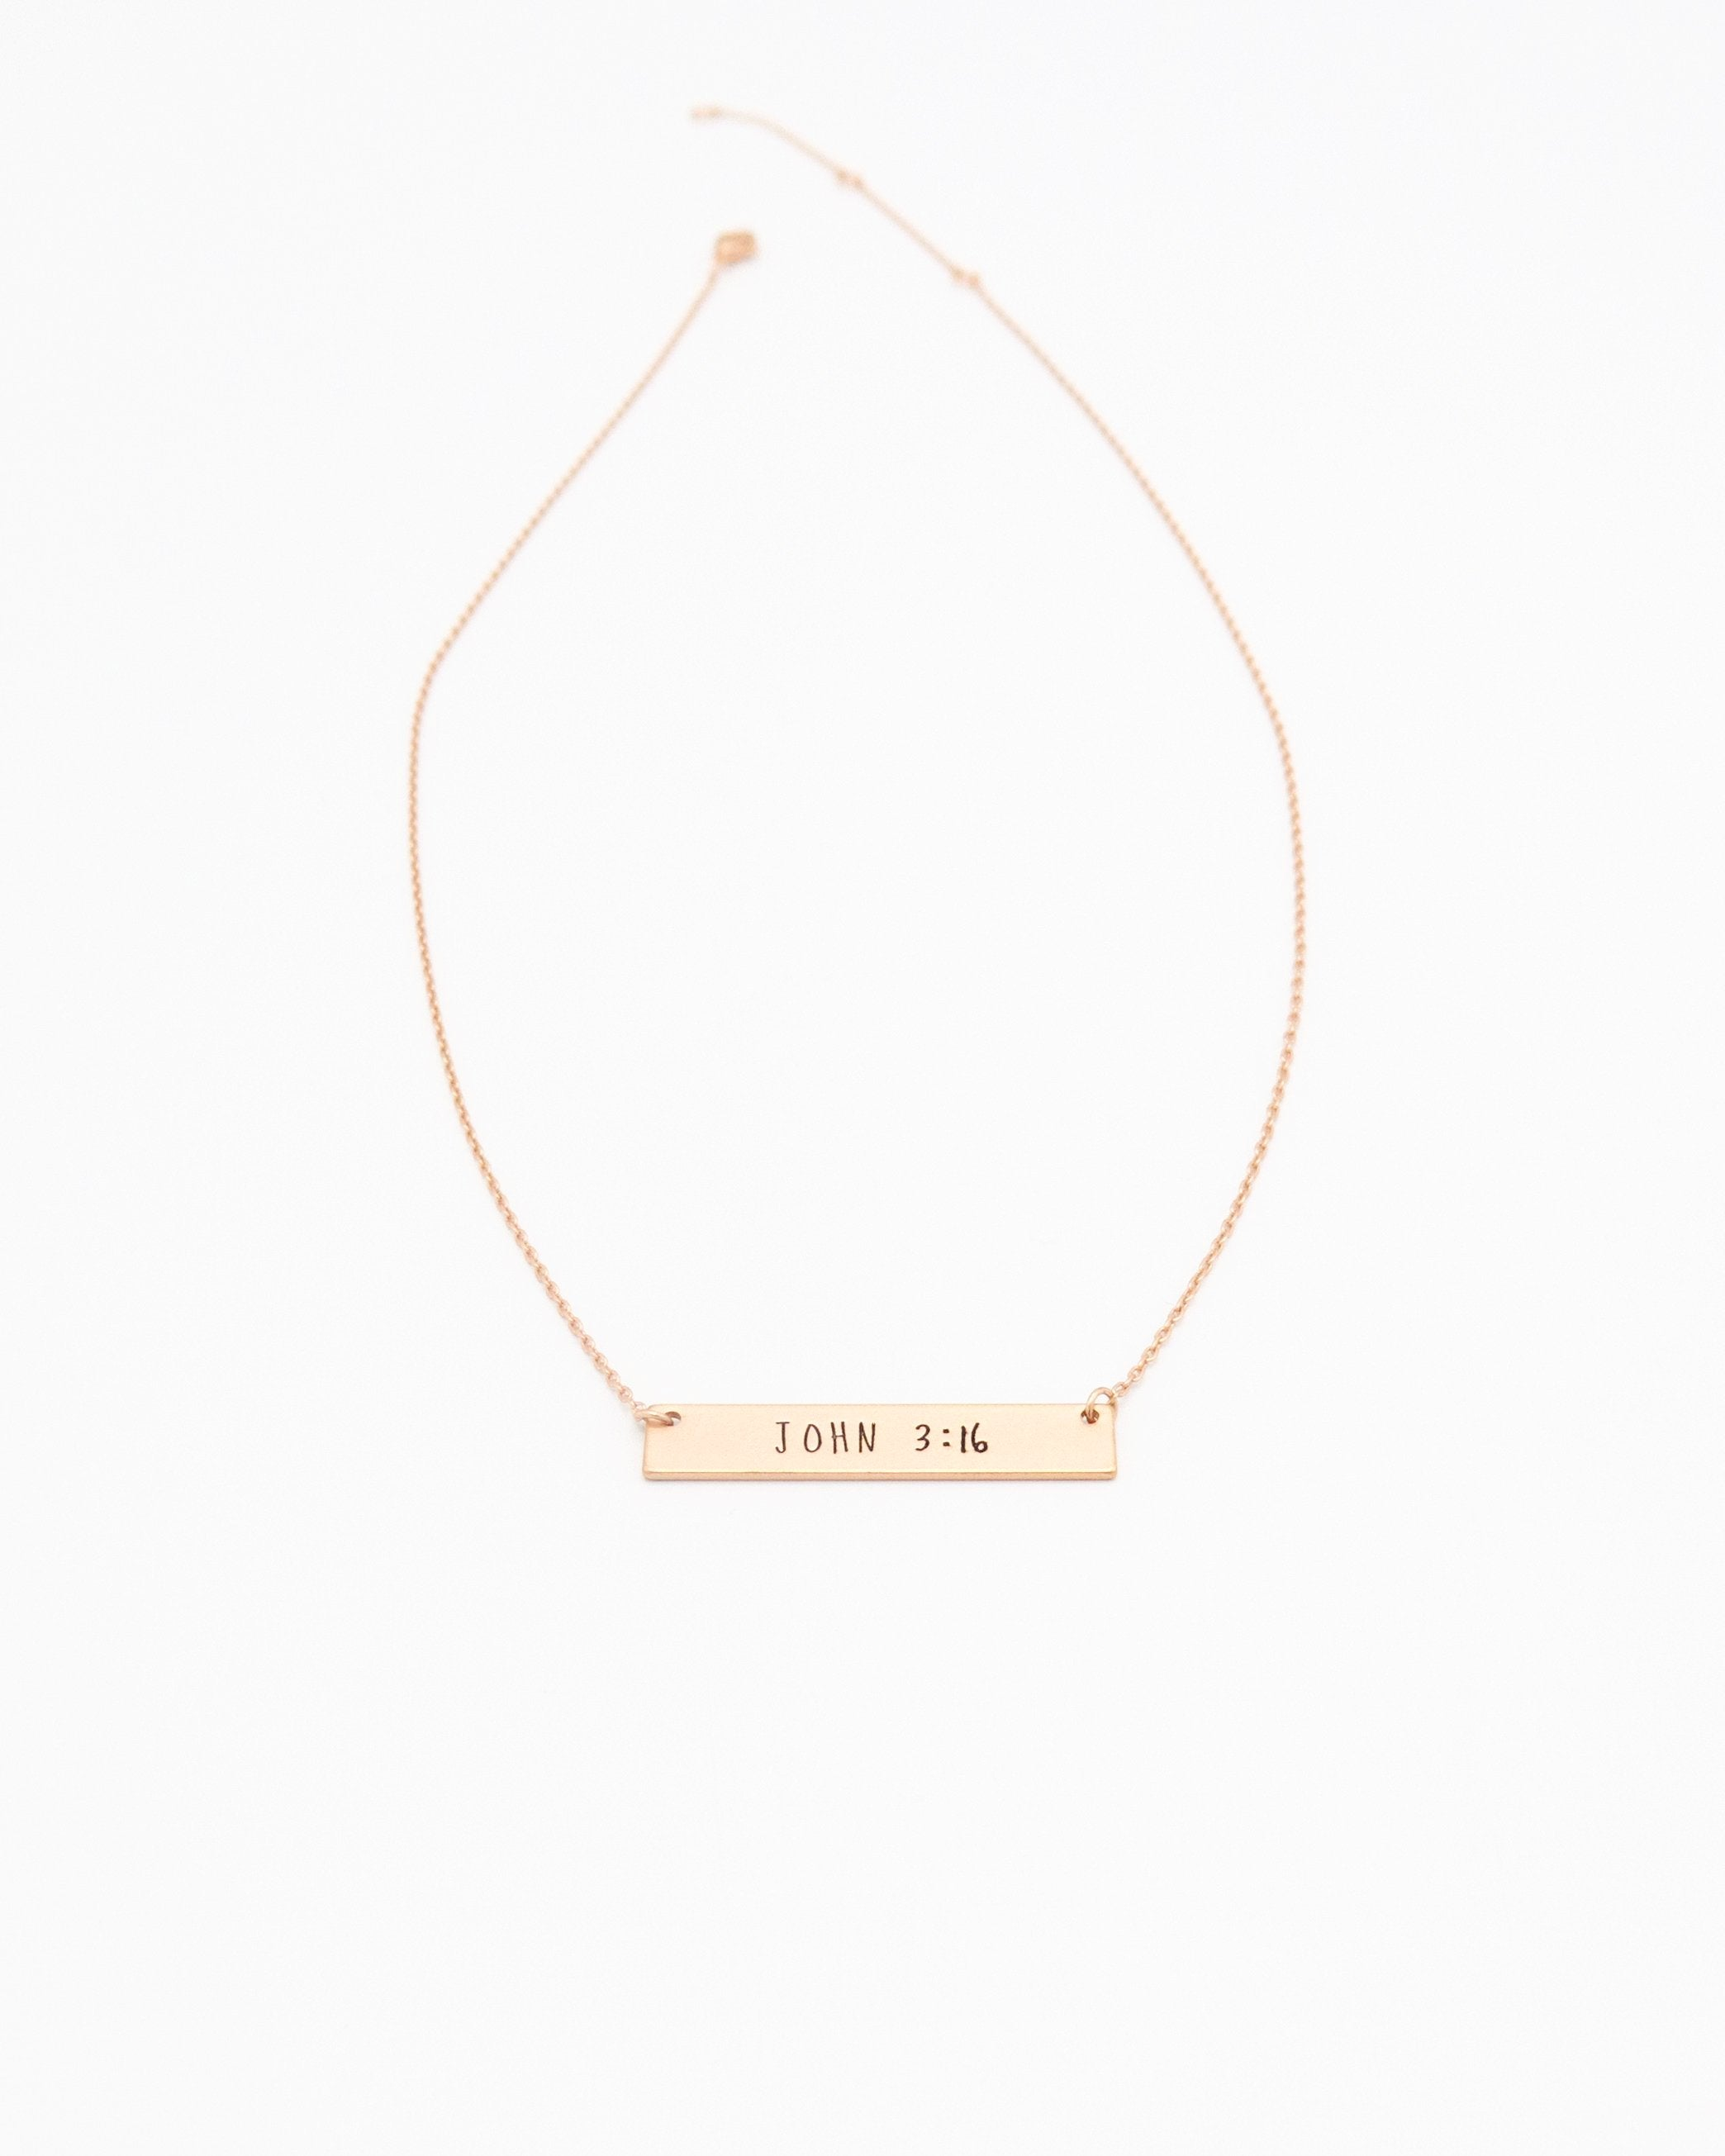 John 3:16 Inspirational Bar Necklace in rose gold